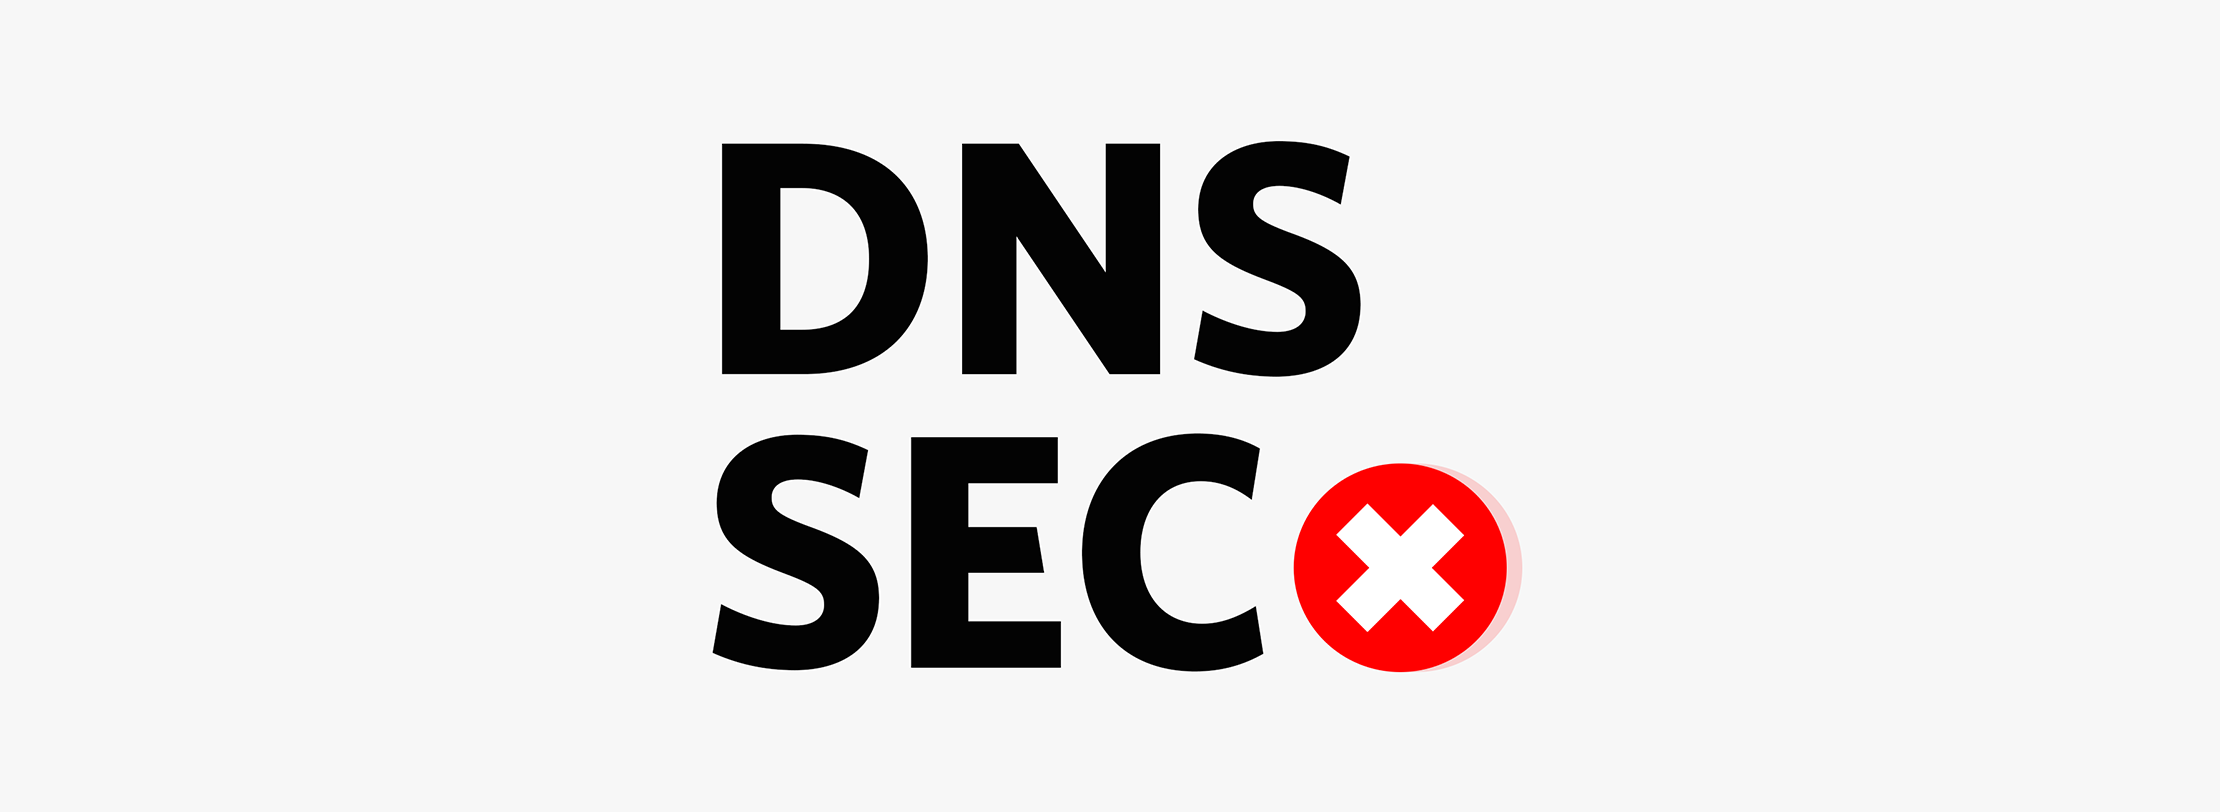 Why dynamic DNS mapping prevents DNSSEC deployment